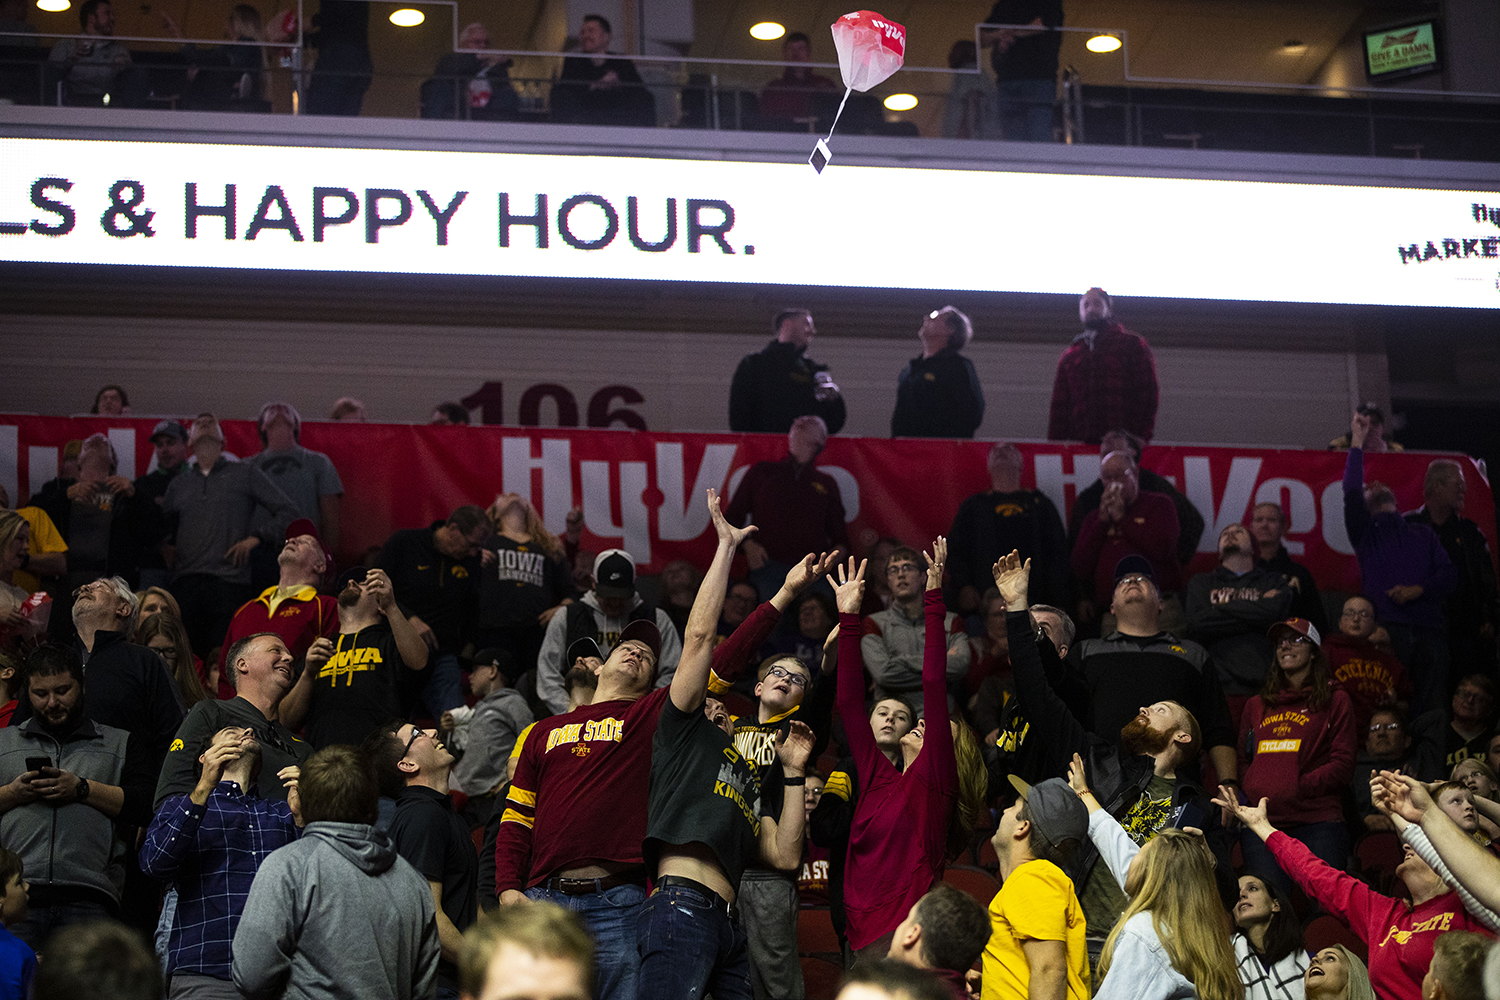 Fans+attempt+to+catch+%2415+Hy-vee+gift+cards+after+they+were+thrown+from+Wells+Fargo+Arena%27s+rafters+during+the+Iowa%2FUNI+men%27s+basketball+game+at+Wells+Fargo+Arena+in+Des+Moines+on+Saturday%2C+Dec.+15%2C+2018.+The+Hawkeyes+defeated+the+Panthers%2C+77-54.+